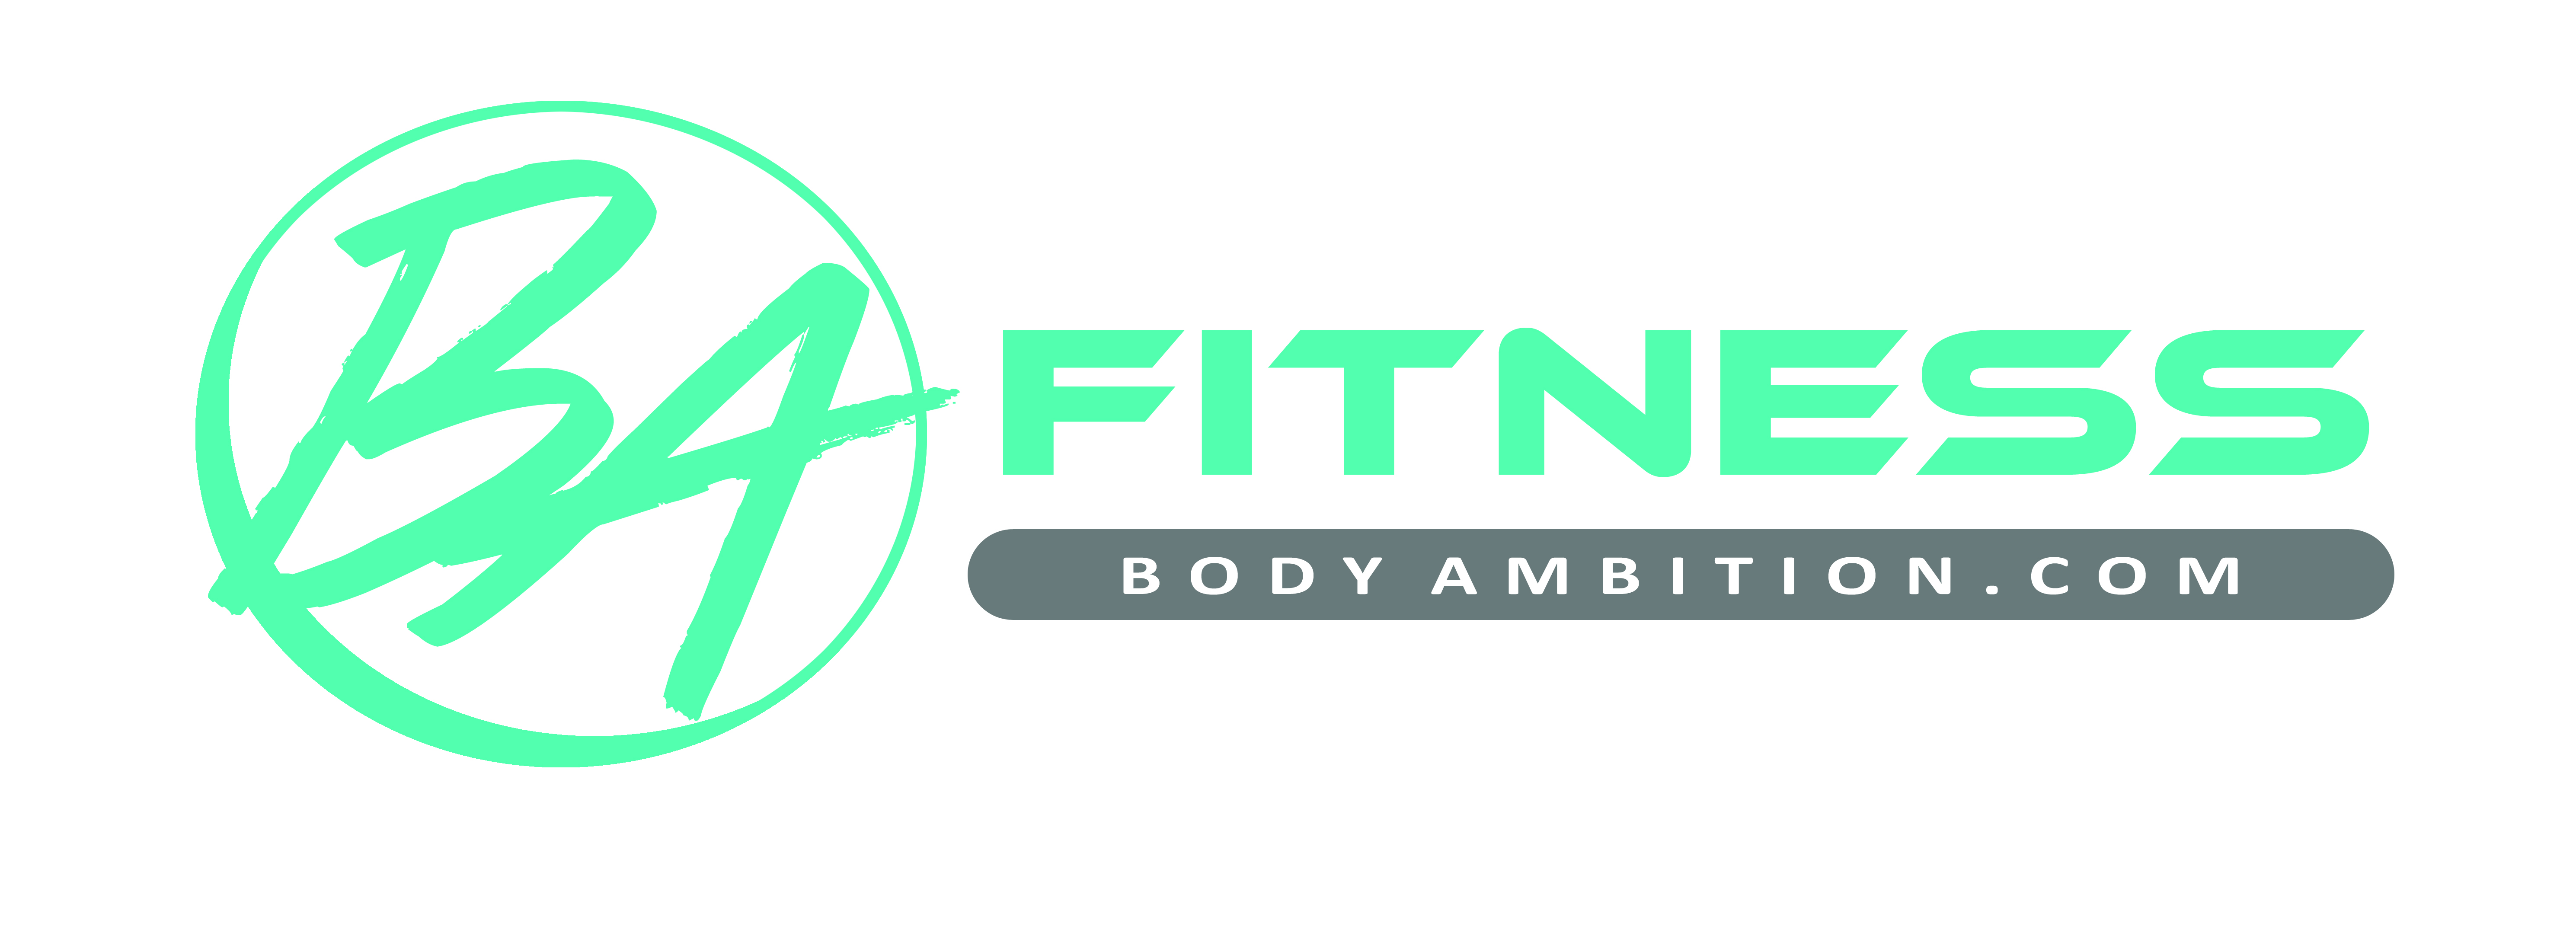 Body Ambition Fitness